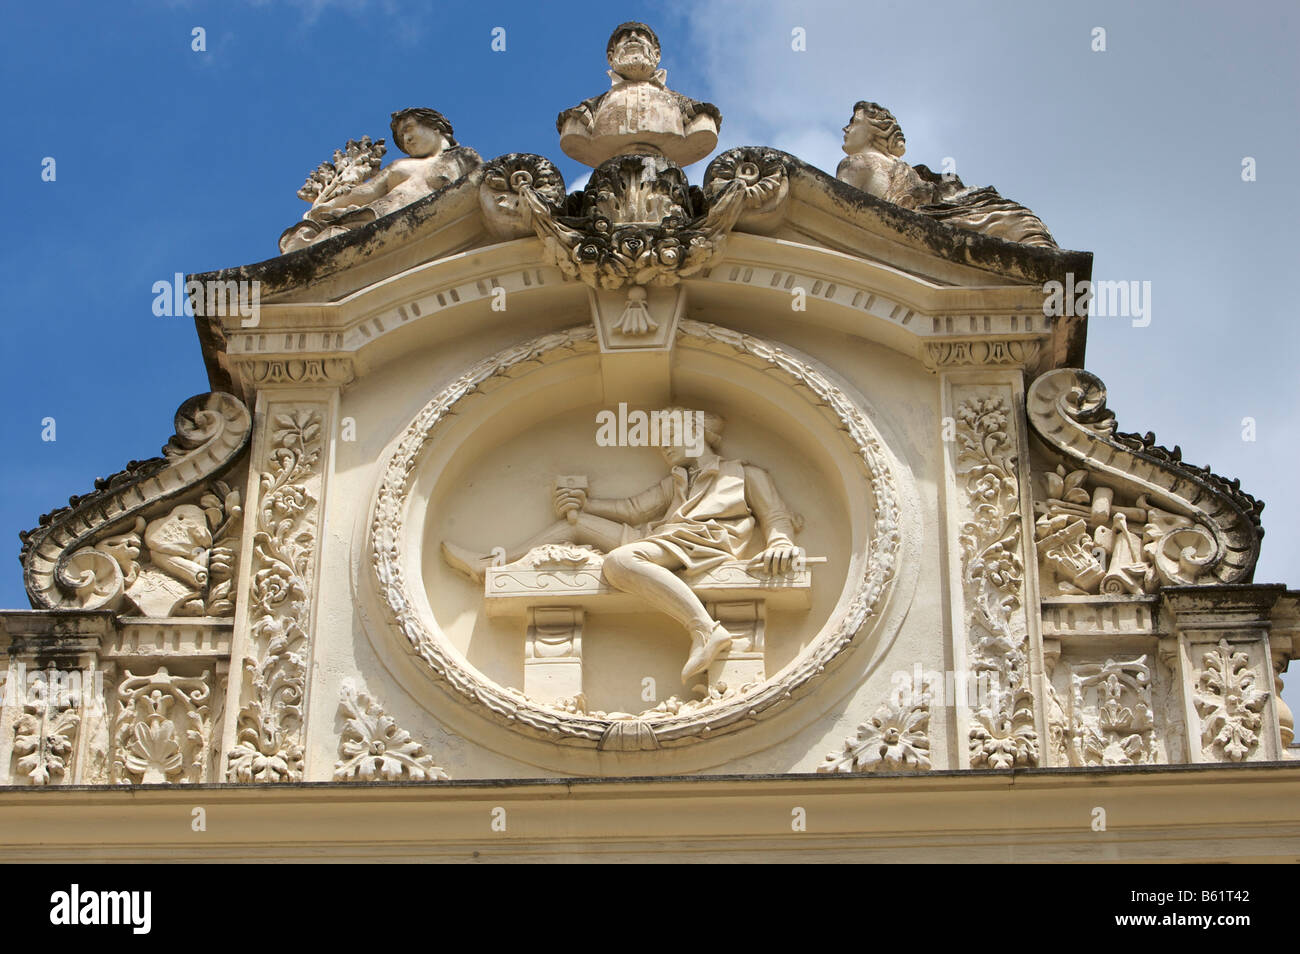 Relief on a restored community centre in the Via Roma, Sassari, Sardinia, Italy, Europe - Stock Image